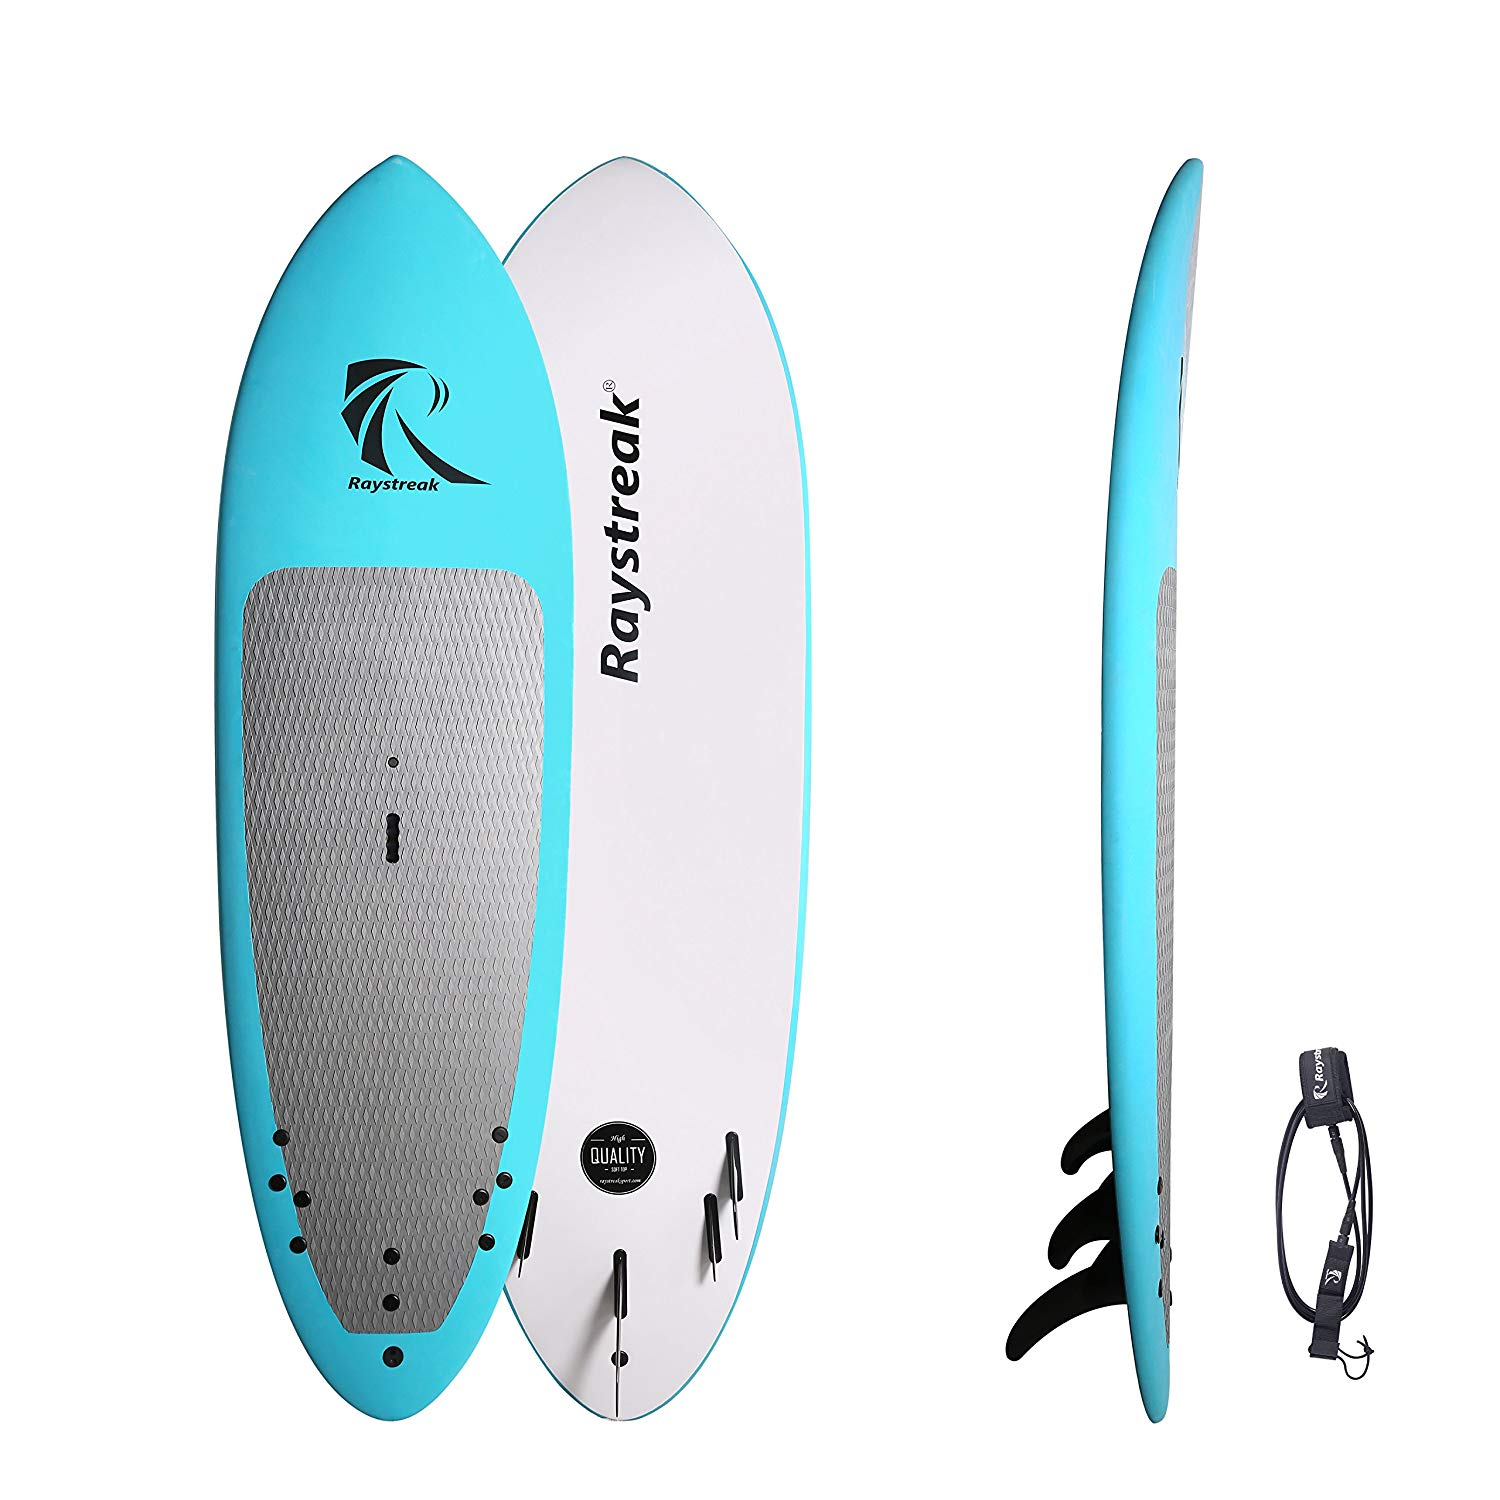 f02d35e9d Get Quotations · RAYSTREAK 8 6 Blue Soft Top Stand Up Paddle board with  deck pad 8ft 6